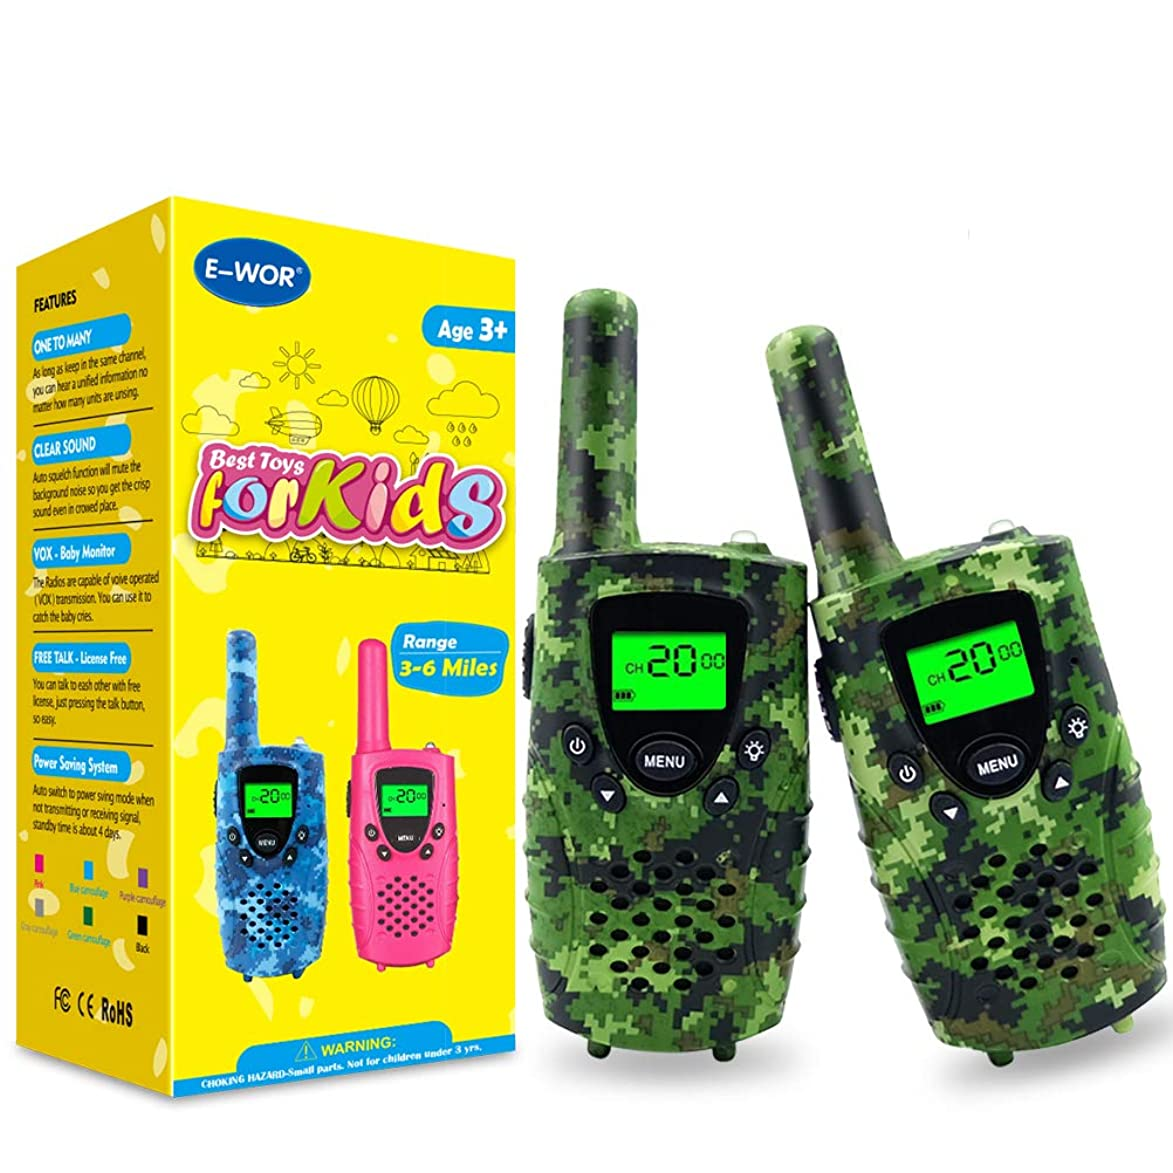 E-wor Walkie Talkies for Kids, 22 Channels FRS/GMRS UHF Kids Walkie Talkies, 2 Way Radios 4 Miles Walkie Talkies Kids with Flashlight-Best Gifts for Boys, 1 Pair,Camo Green